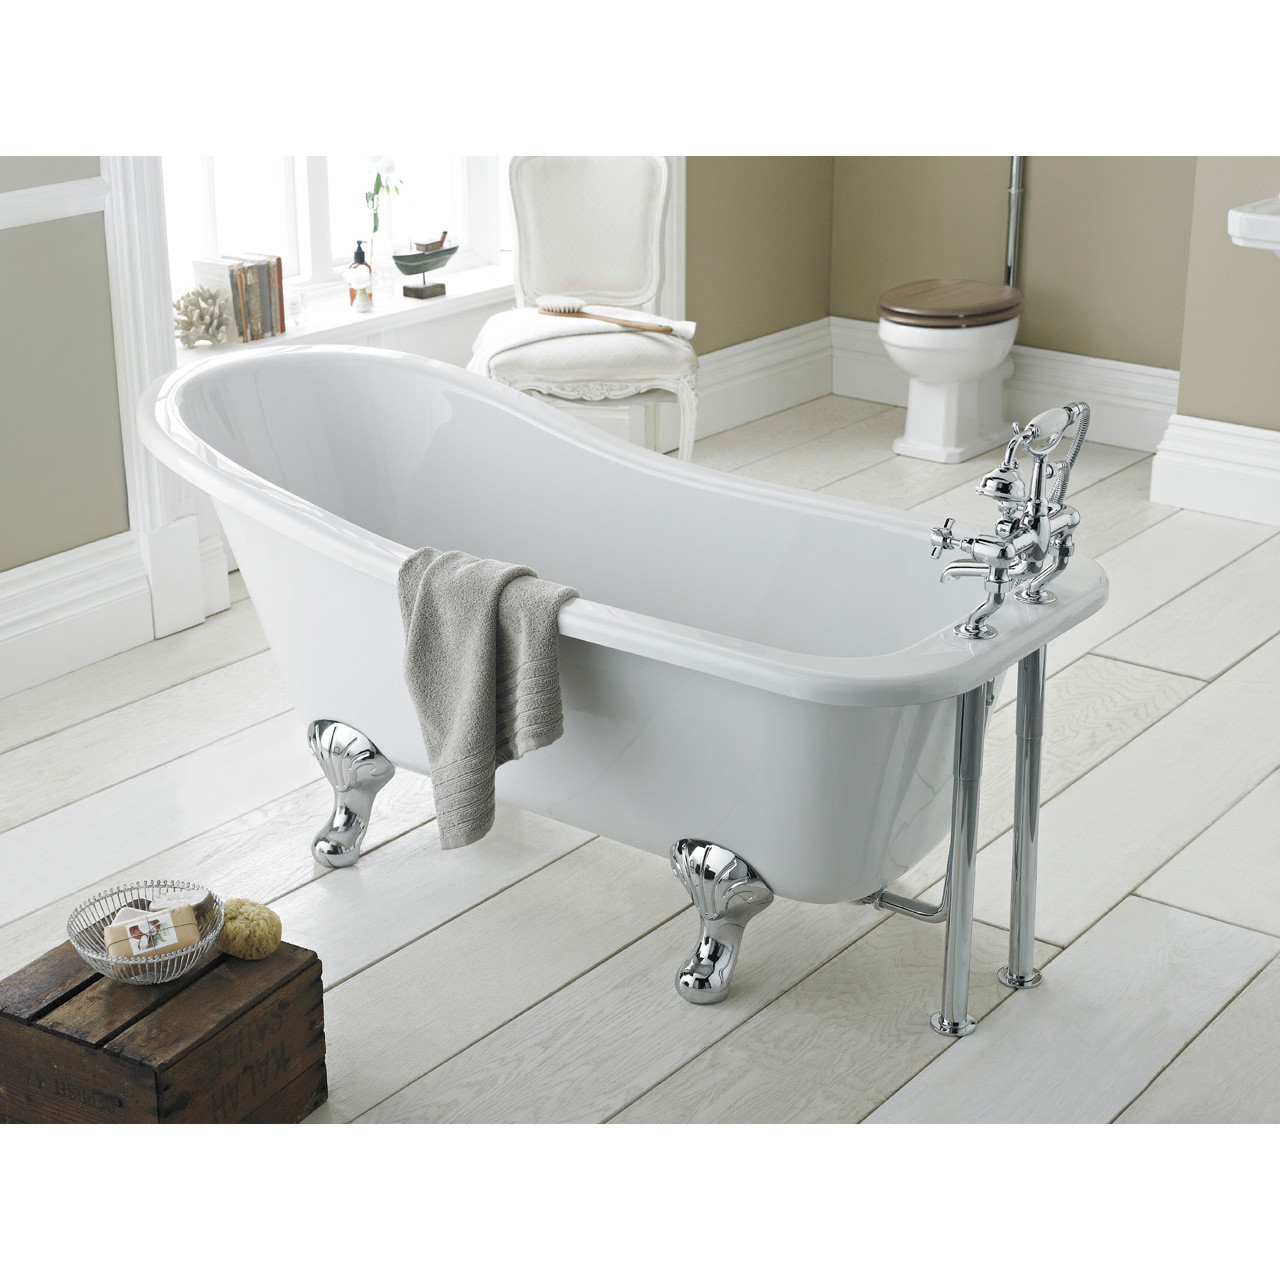 Nuie Brockley 1700mm Single Ended Freestanding Bath with Deacon Legs - RL1690M1